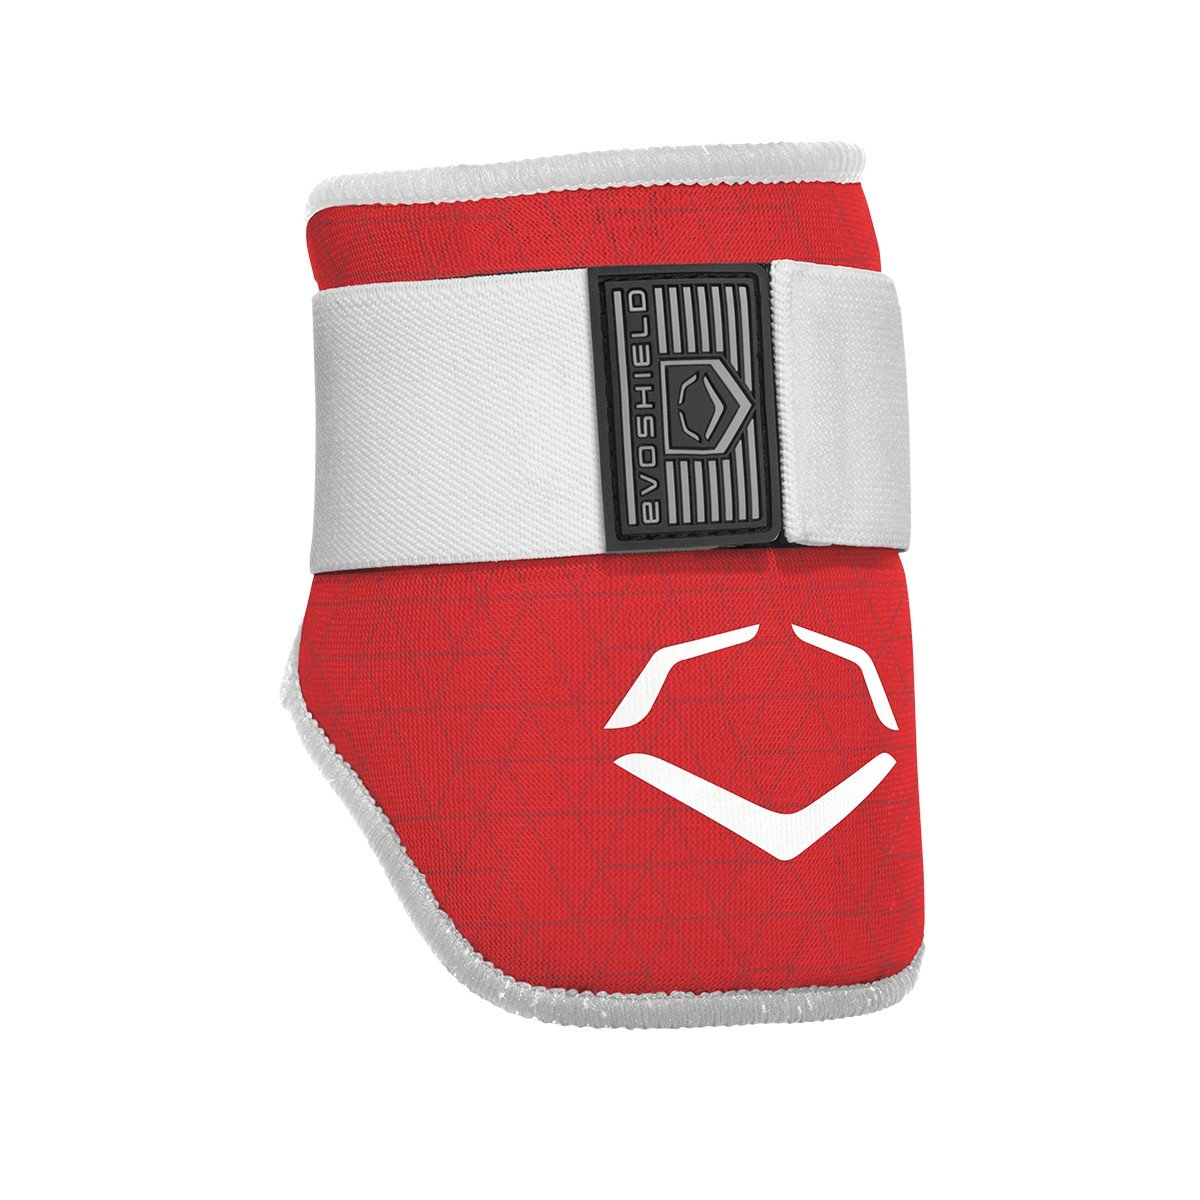 EvoShield EvoCharge Batter's Elbow Guard - Youth, Red